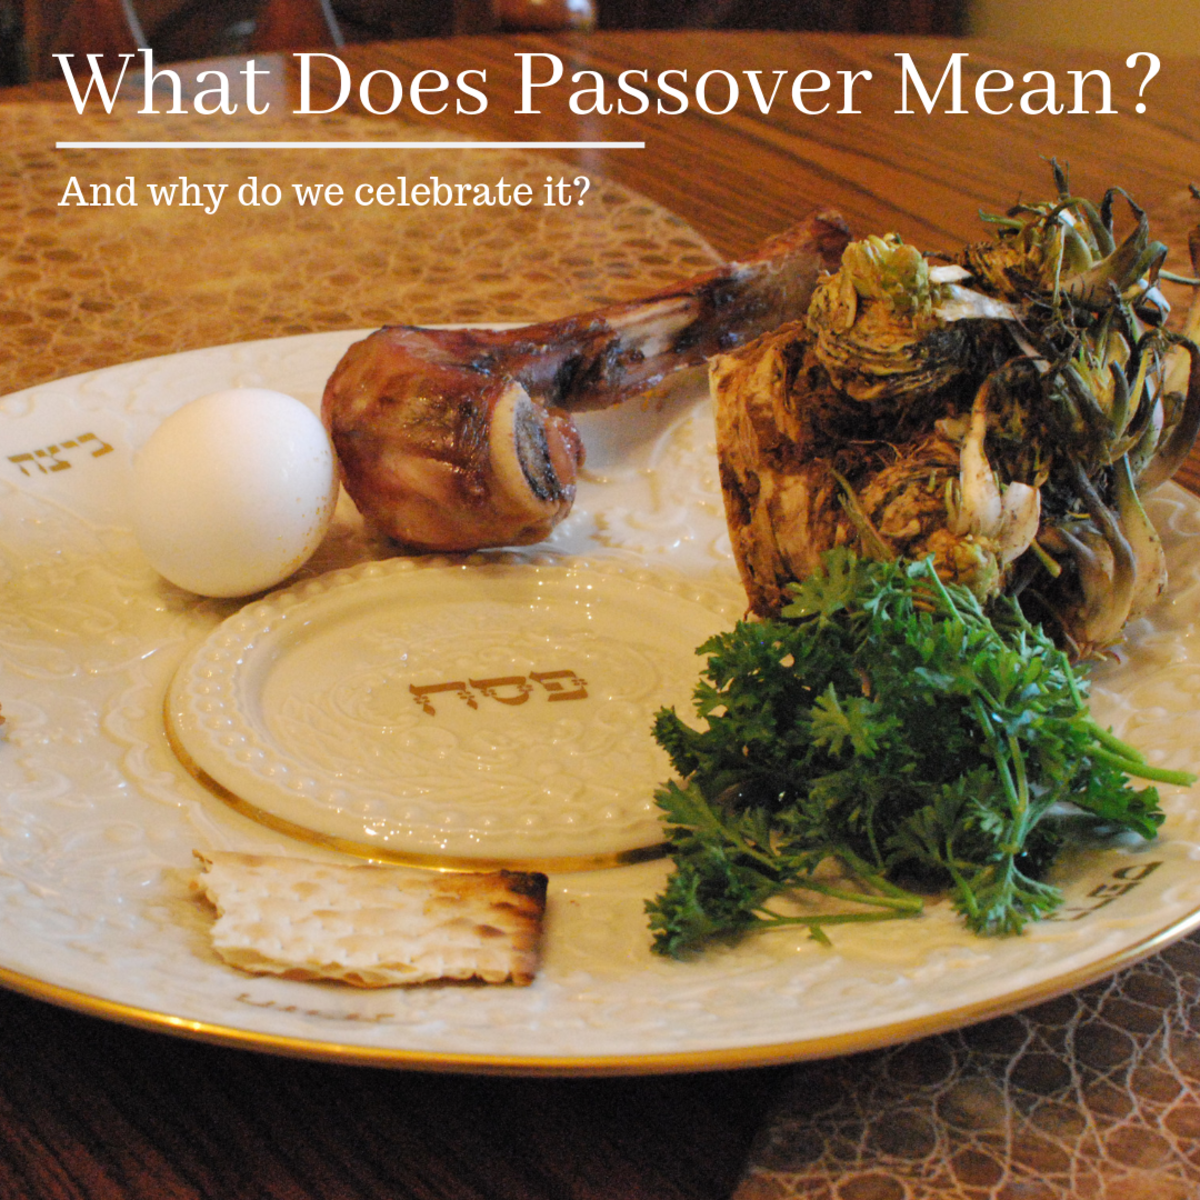 This article will break down the meaning and history behind Passover and explain why it is such an important holiday for the Jewish people.